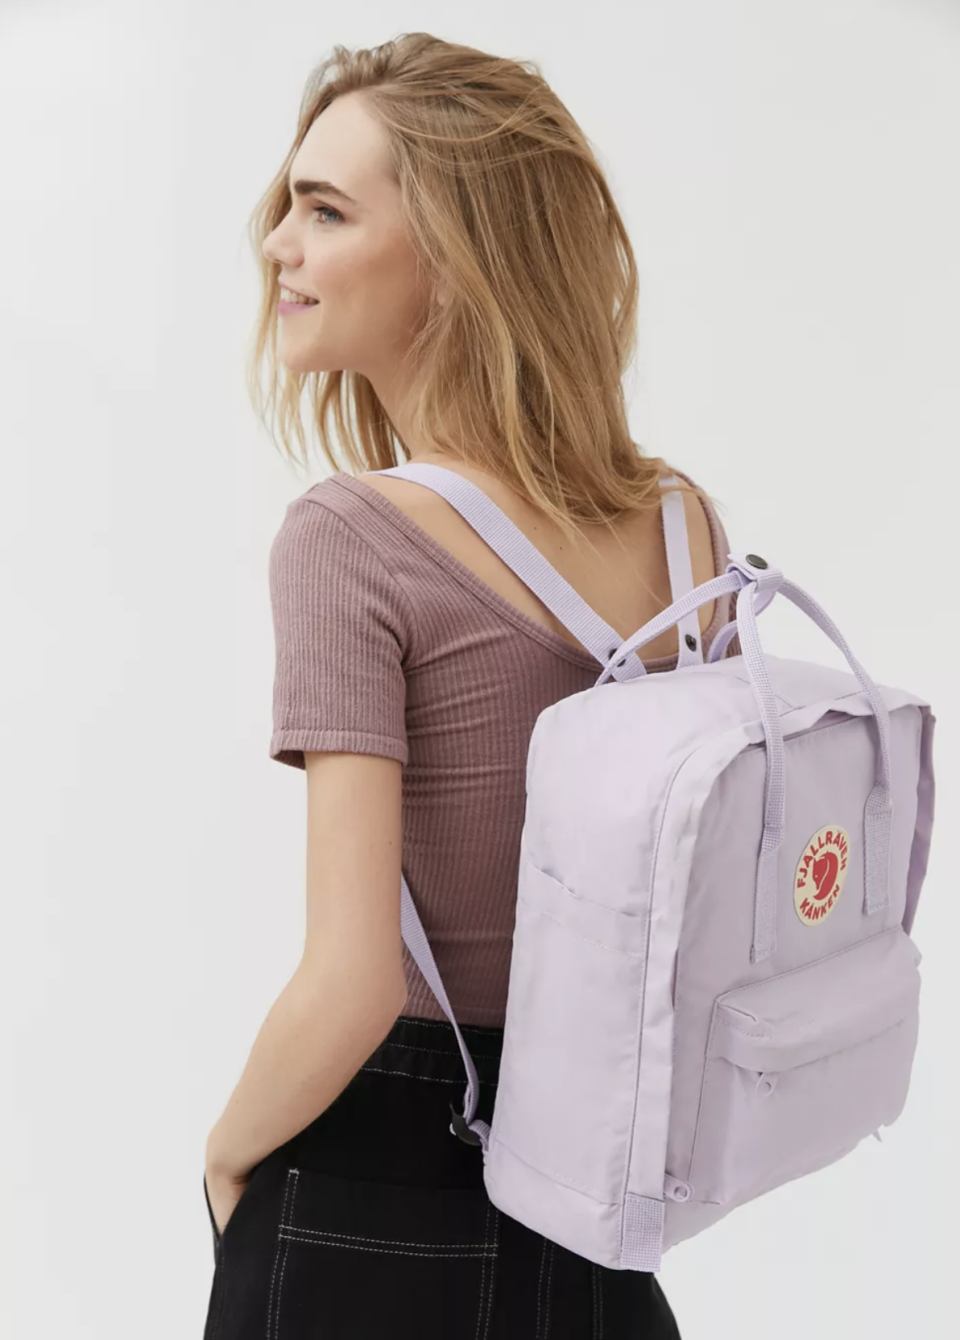 The best backpacks for middle & high school: Fjallraven Classic Kånken Backpack in Lavender (Photo via Urban Outfitters)